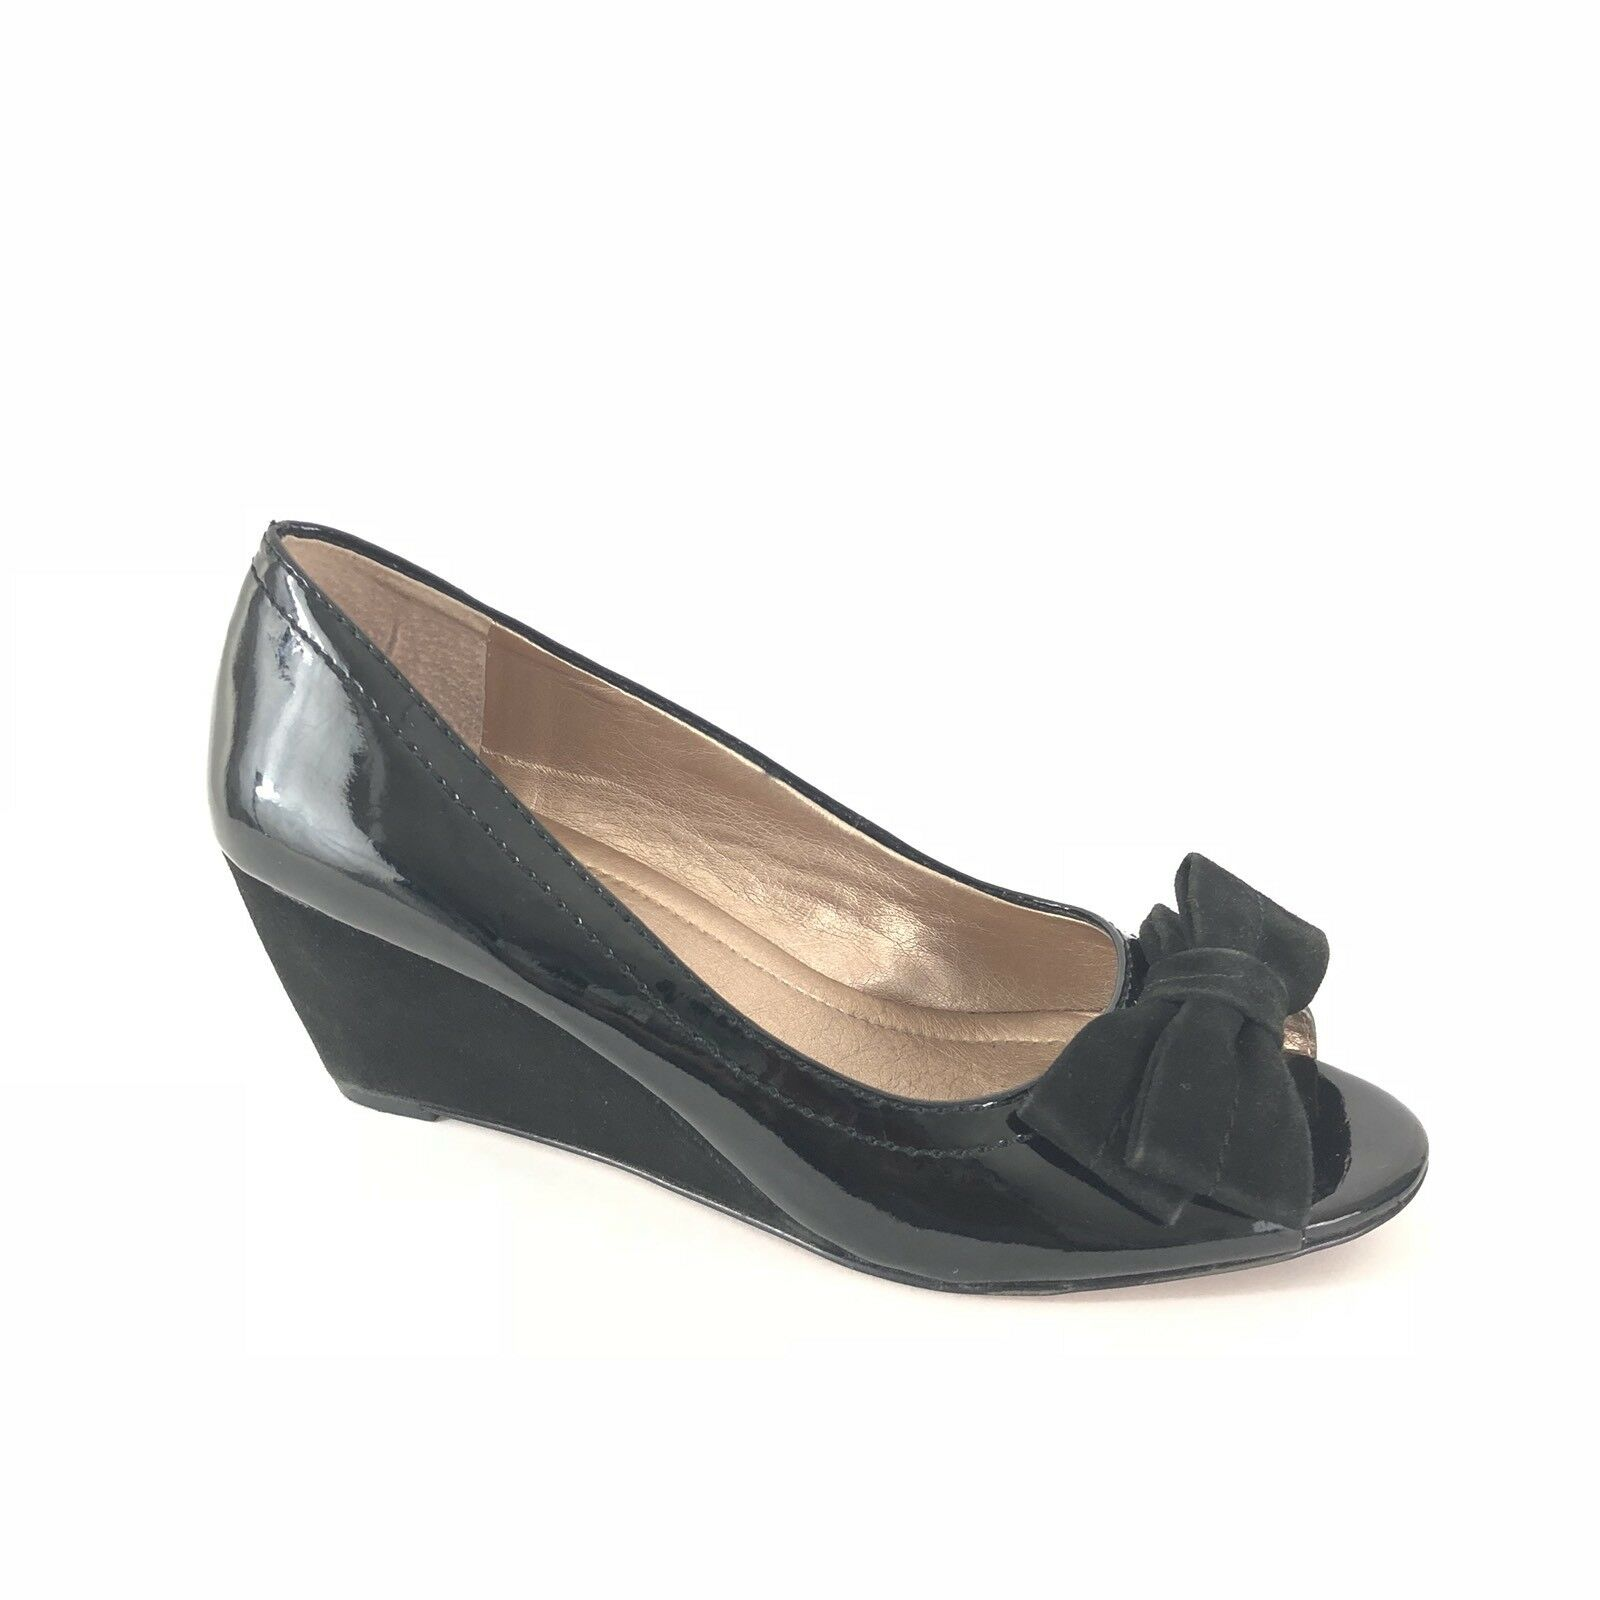 BCBGeneration Heel Women's Size 7 Black Patent Leather Suede Heel BCBGeneration Bow Open Toe Wedges c2da60